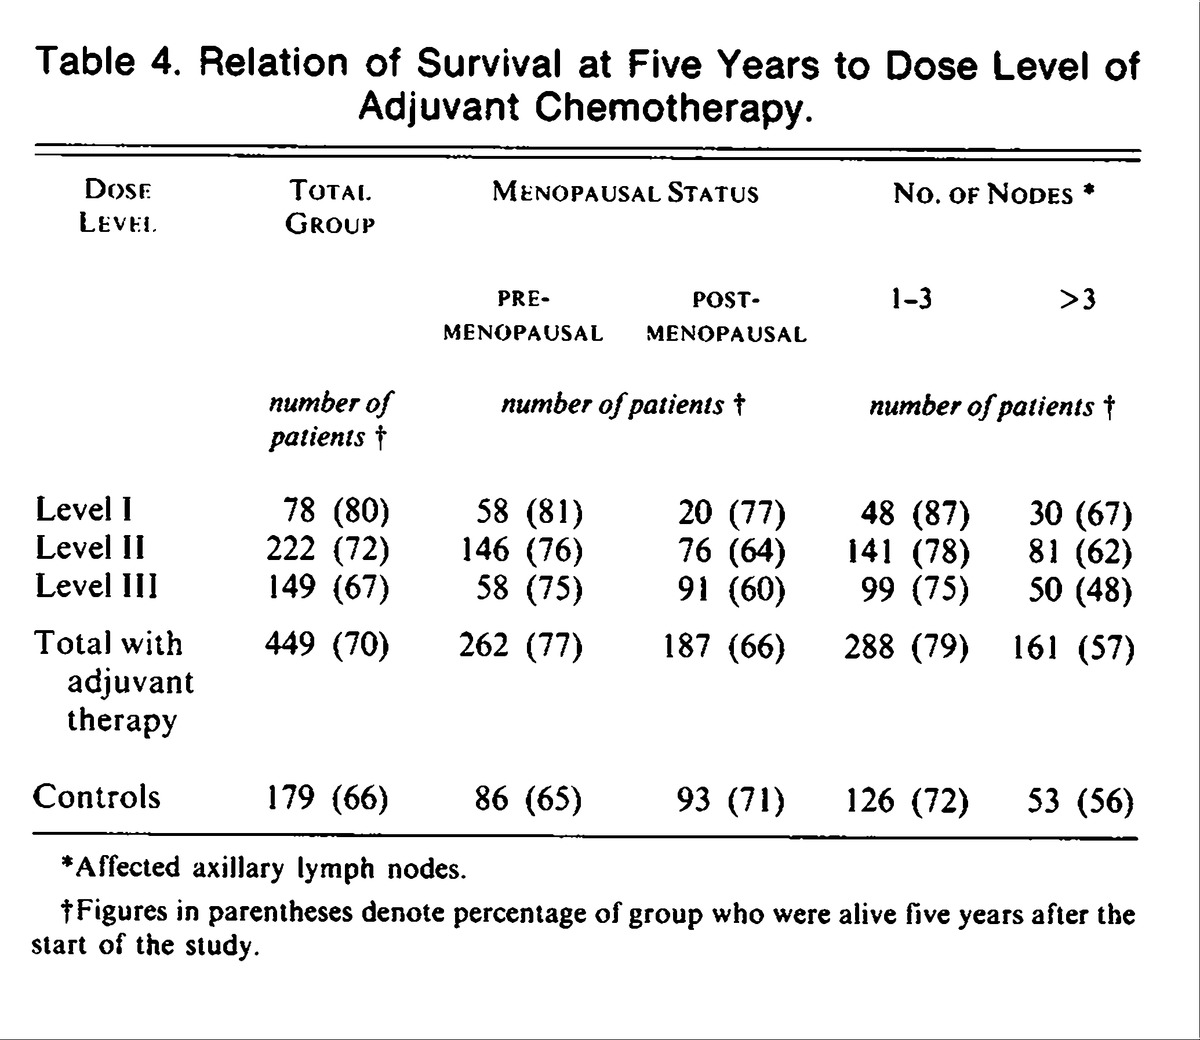 Dose response effect of adjuvant chemotherapy in breast cancer nejm relation of survival at five years to dose level of adjuvant chemotherapy xflitez Gallery